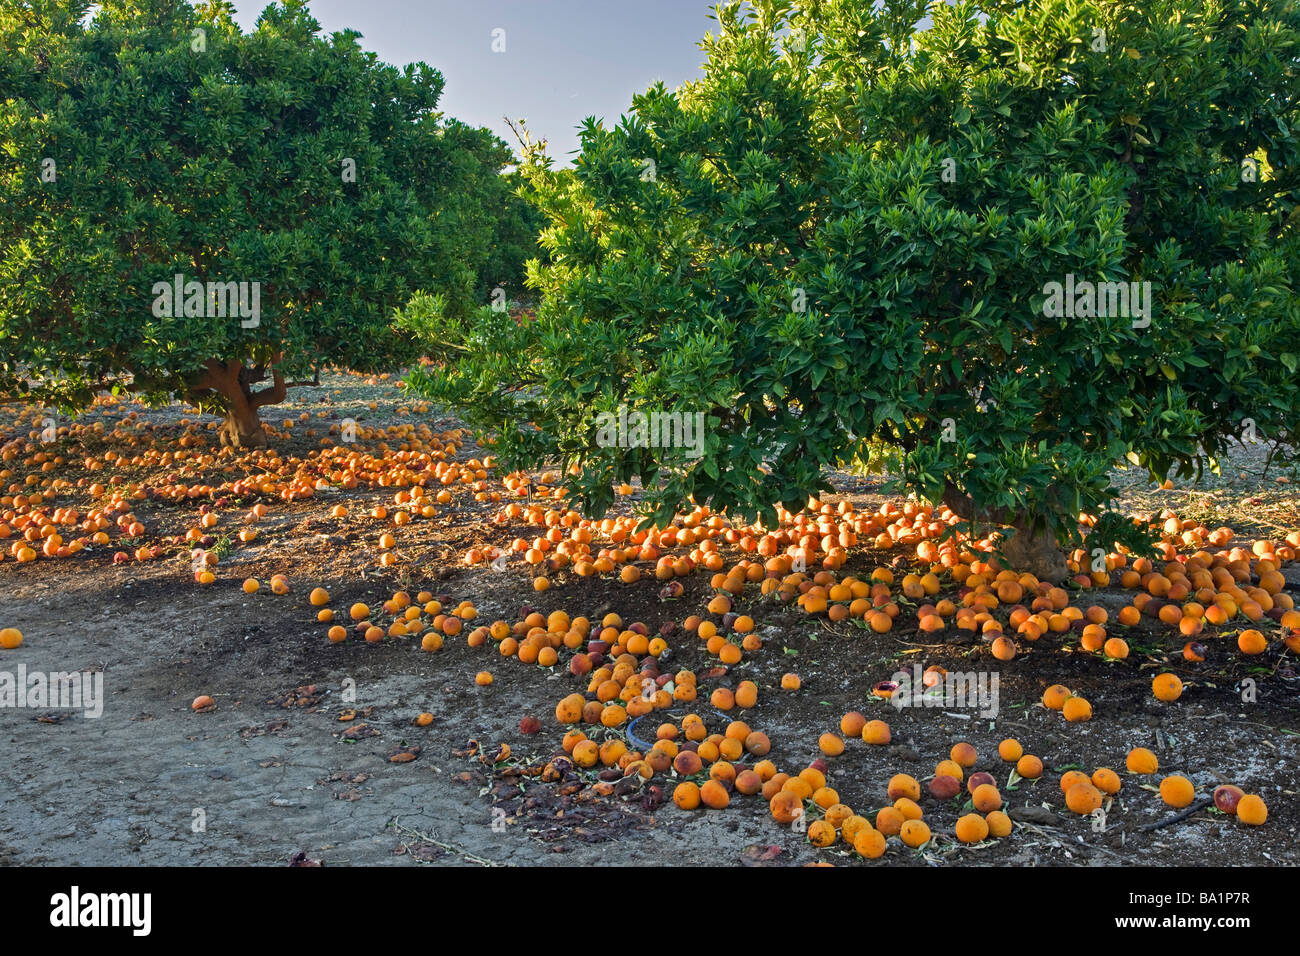 Fallen decaying  'Blood Oranges'  under trees. - Stock Image